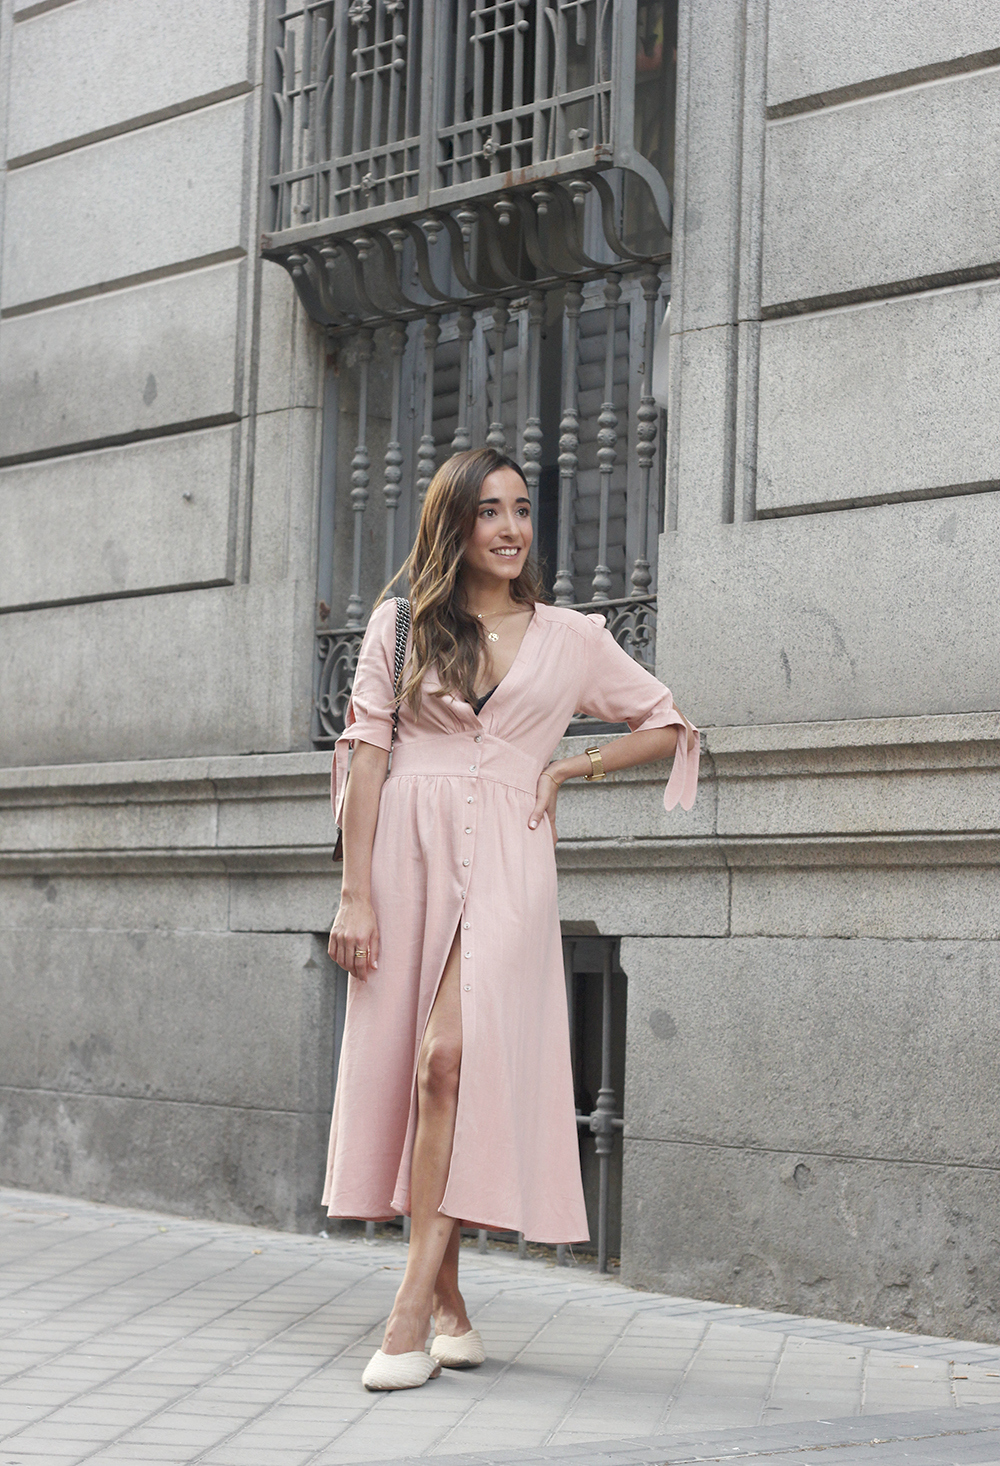 pink midi dress mules gucci bag outfit street style 201805